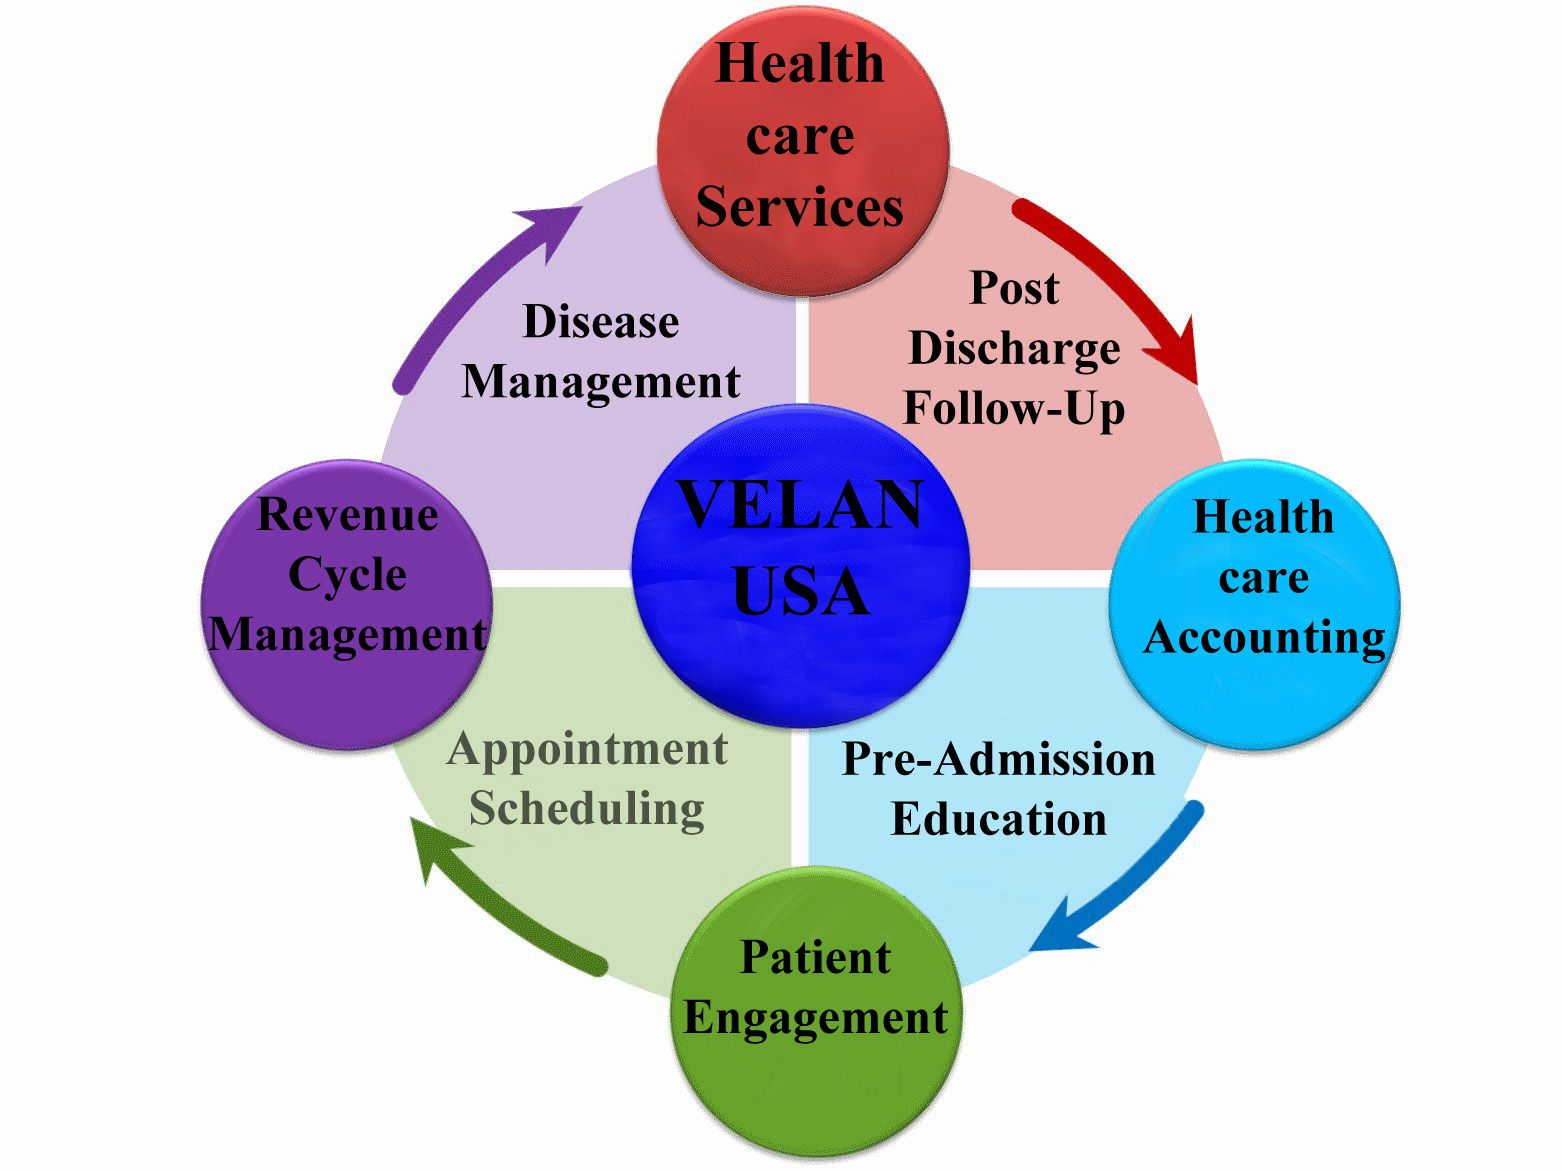 hight resolution of velanusa offers healthcare accounting revenue cycle management and patient engagement services we process your financial transactions and facilitate you